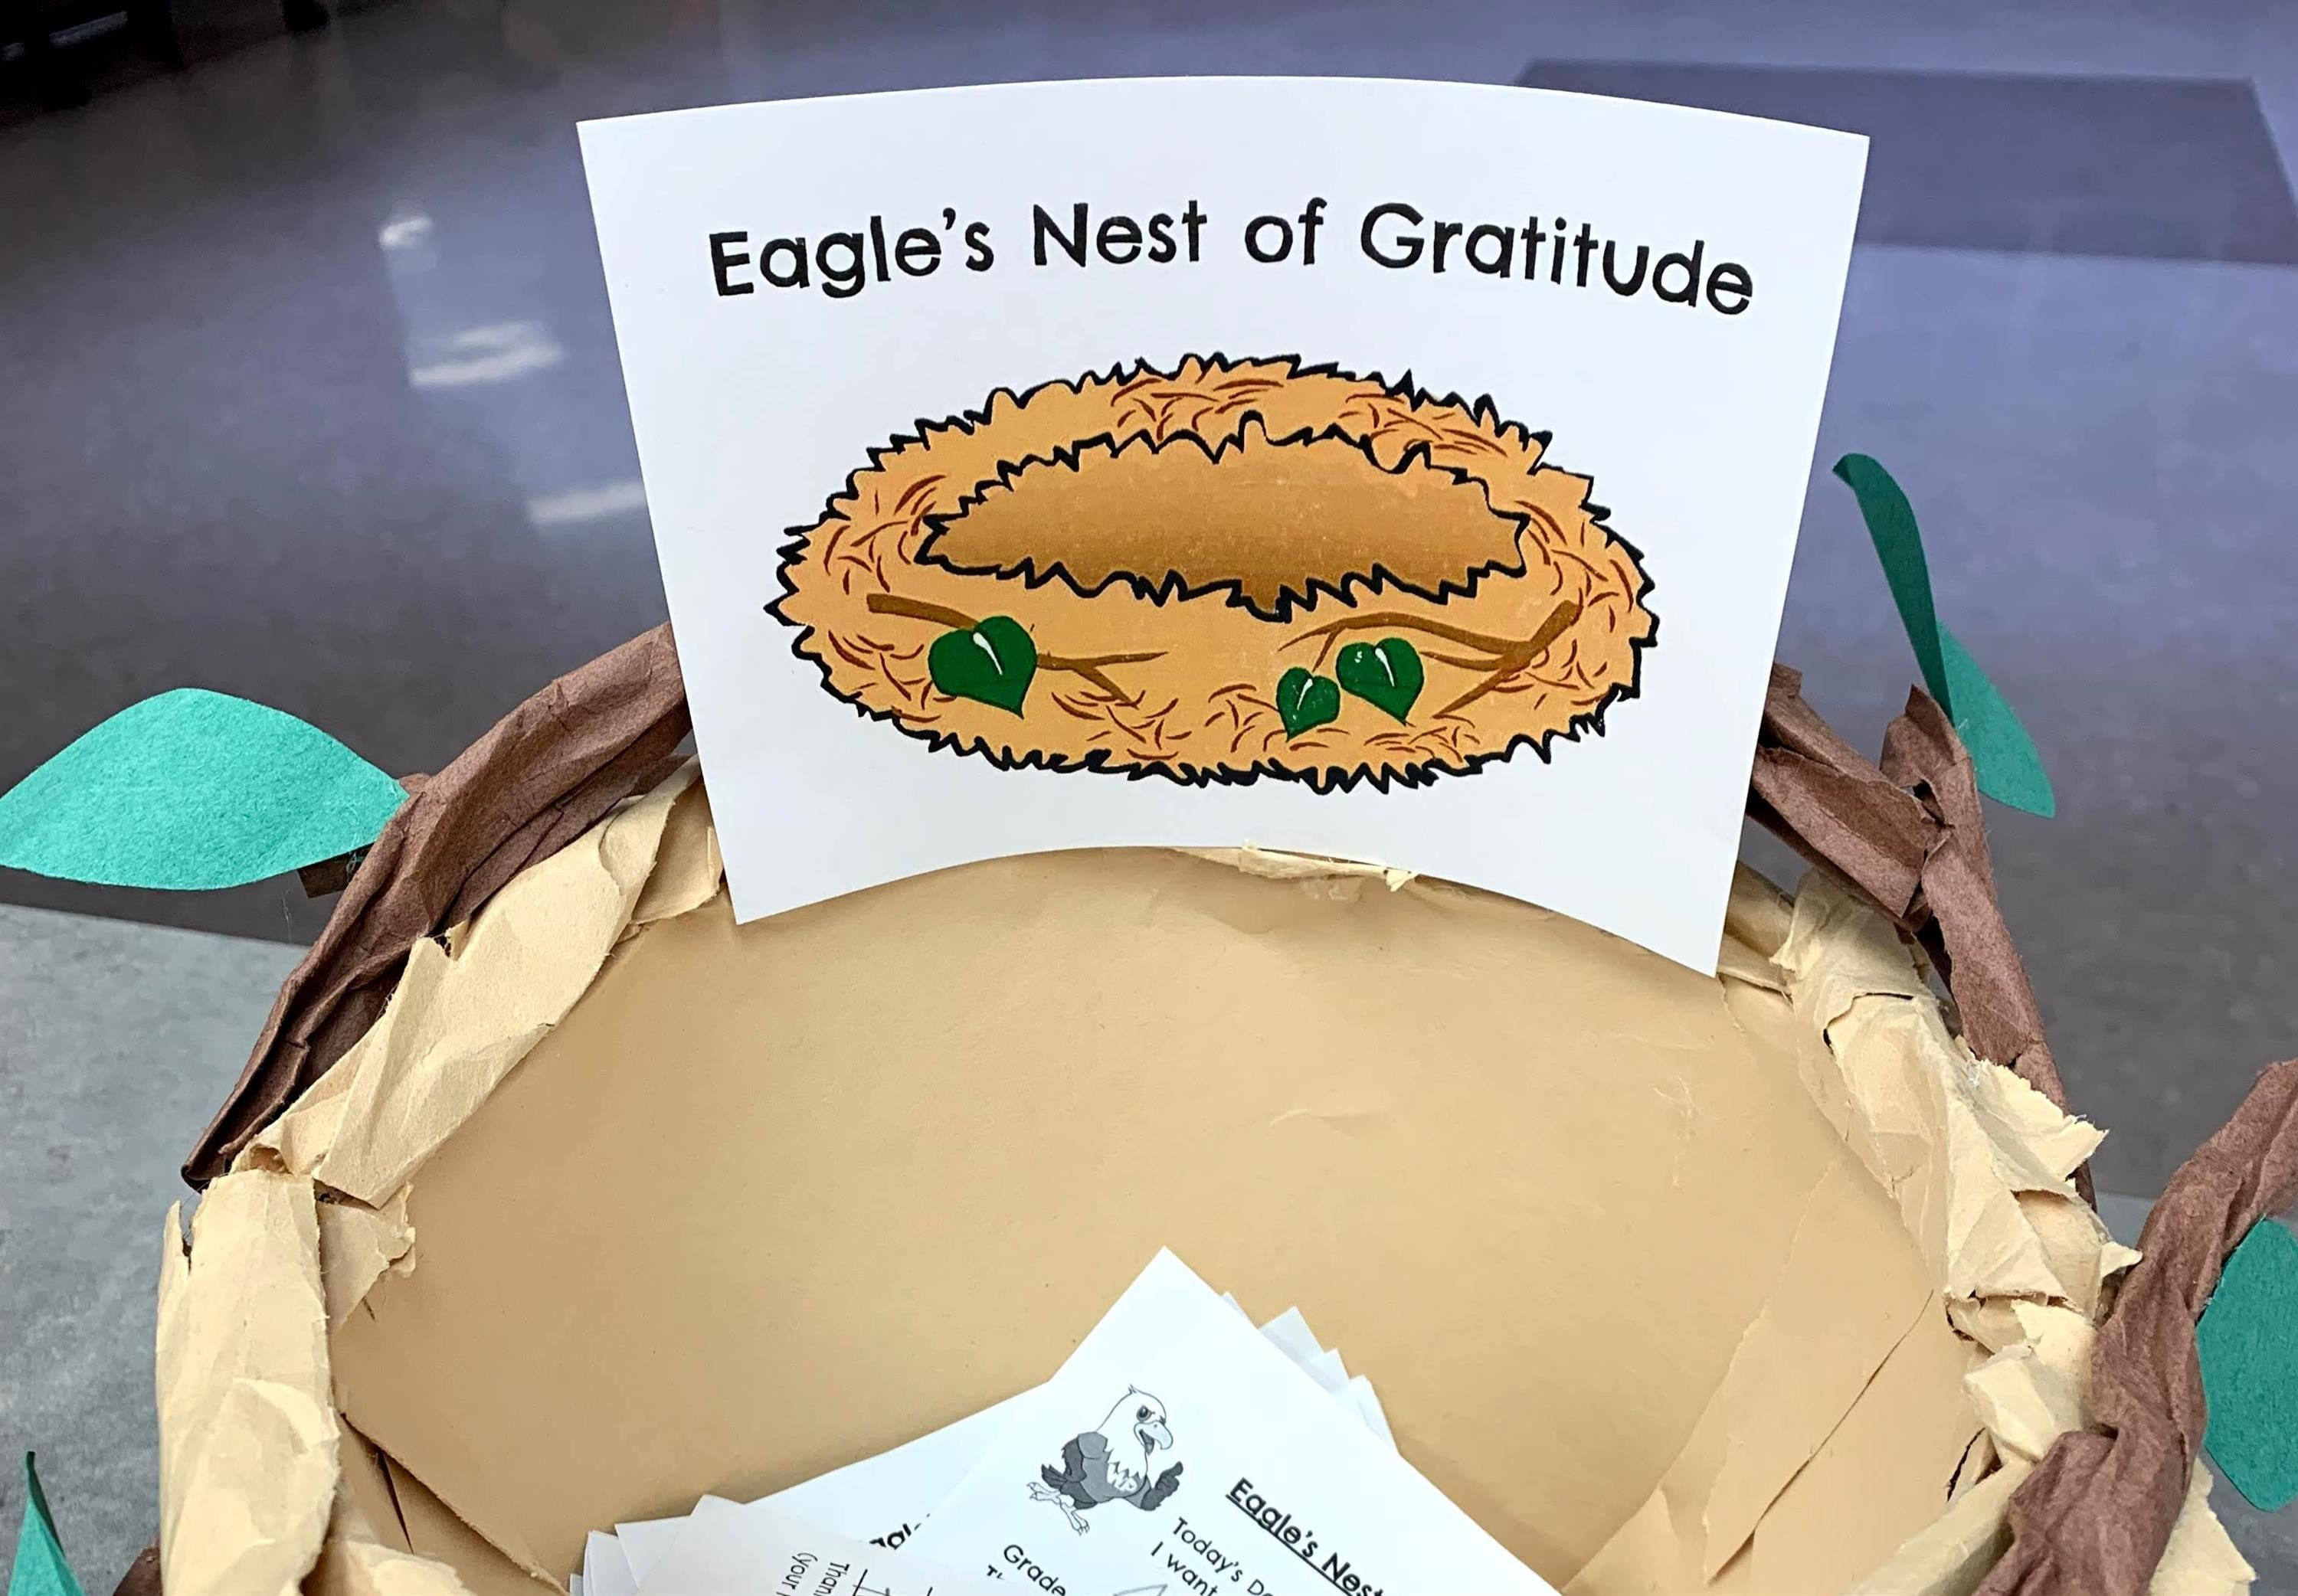 Eagle's Nest of Gratitude Nominations